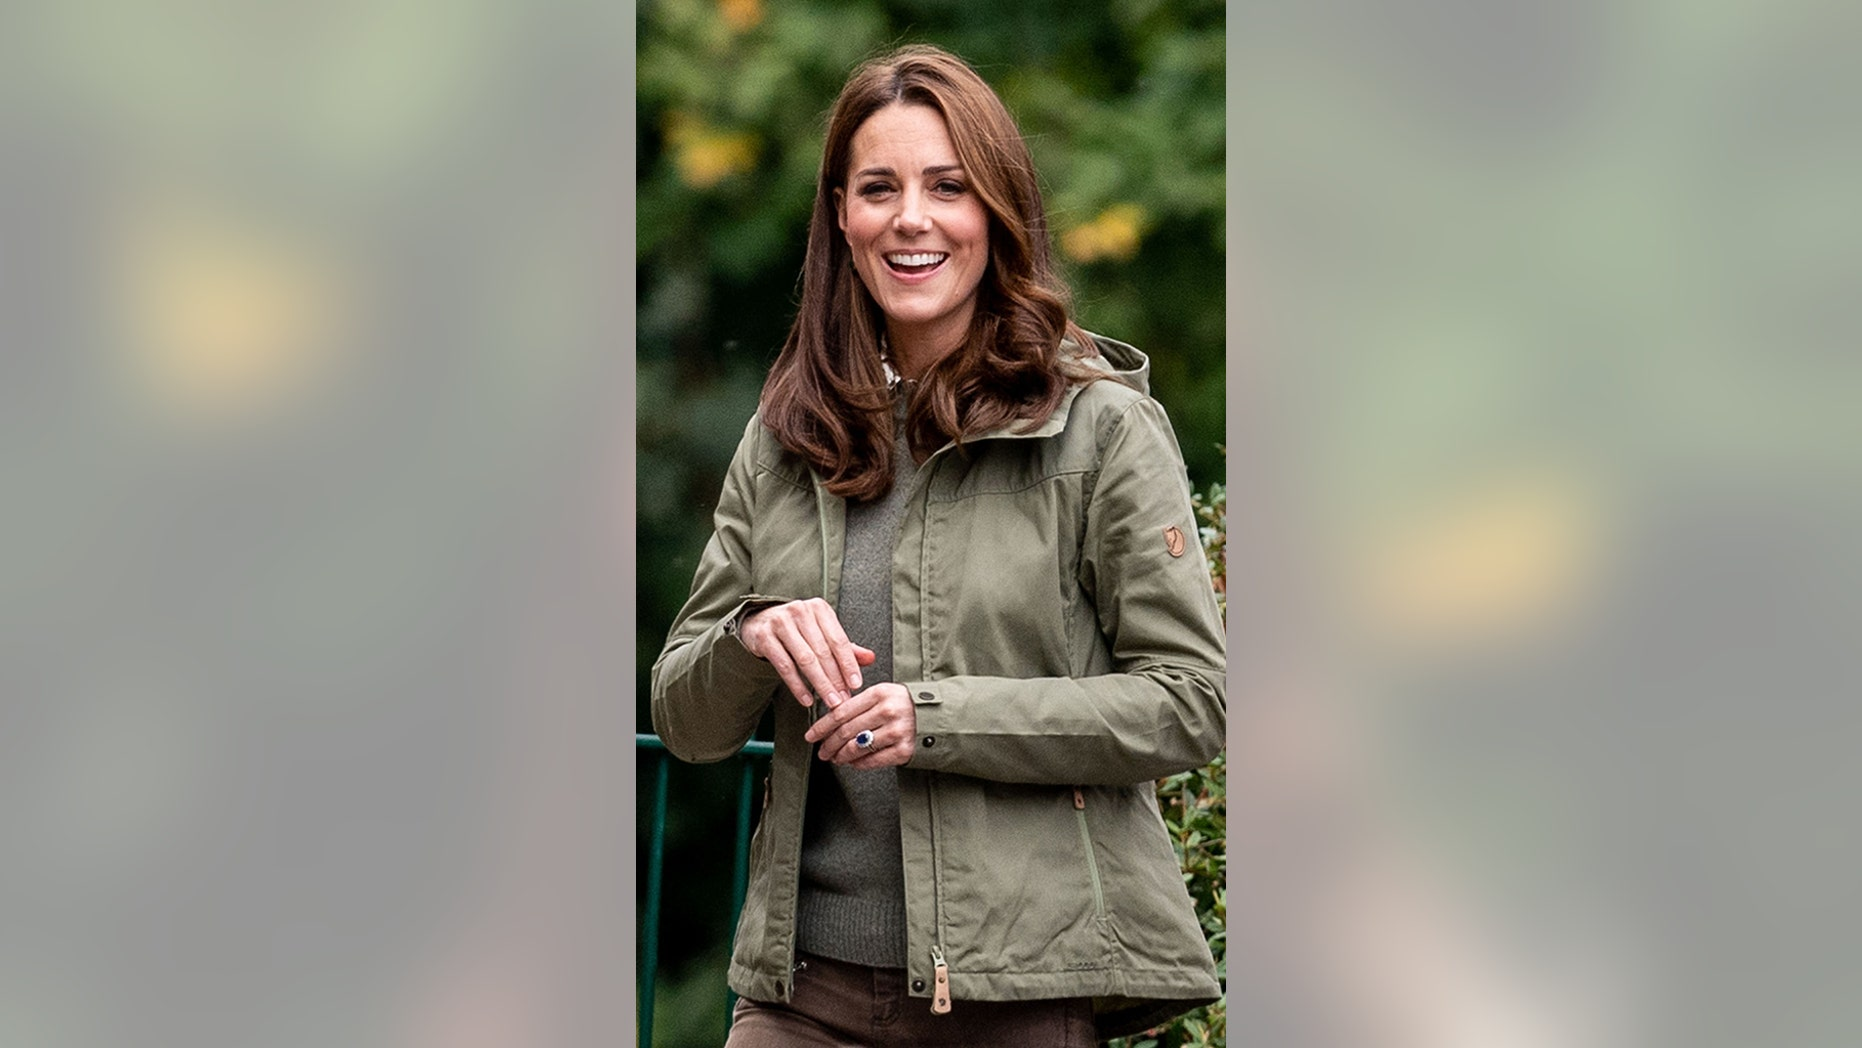 Catherine, Duchess of Cambridge during a visit to Sayers Croft Forest School and Wildlife Garden on Oct. 2, 2018 in London.